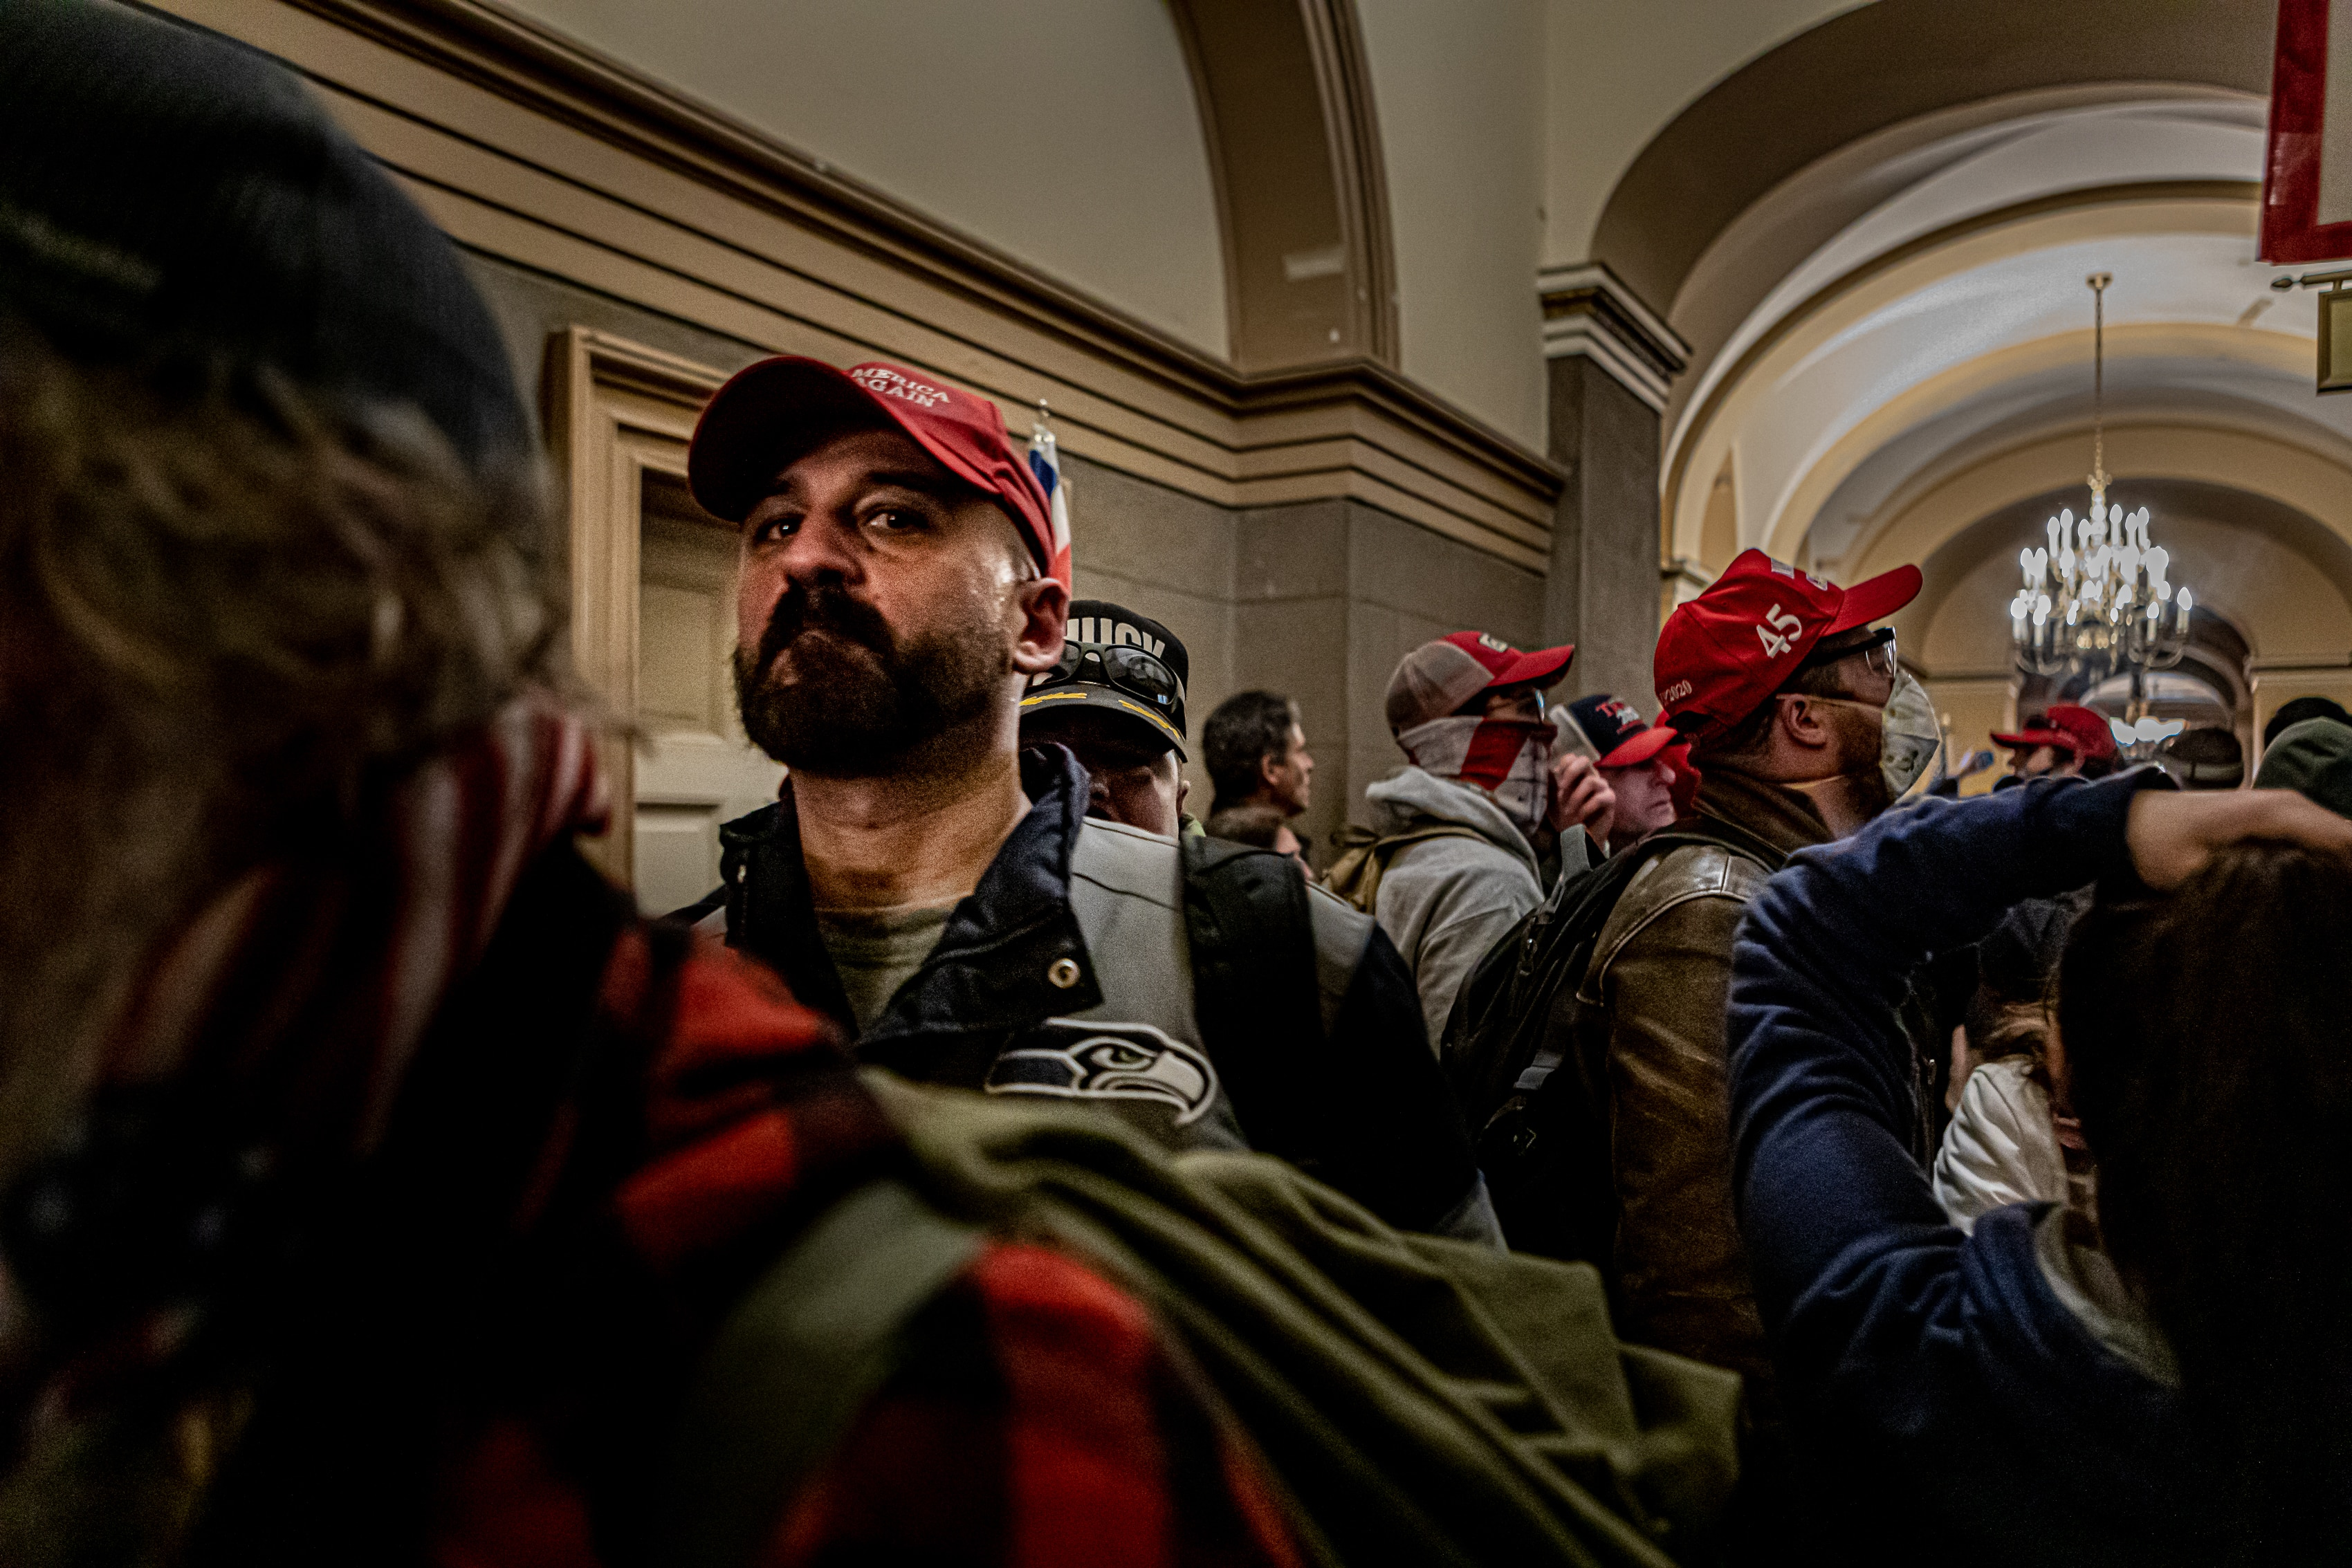 Pro-Trump supporters and far-right forces flooded Washington DC to protest Donald Trump's election loss. on 6 January, 2021.